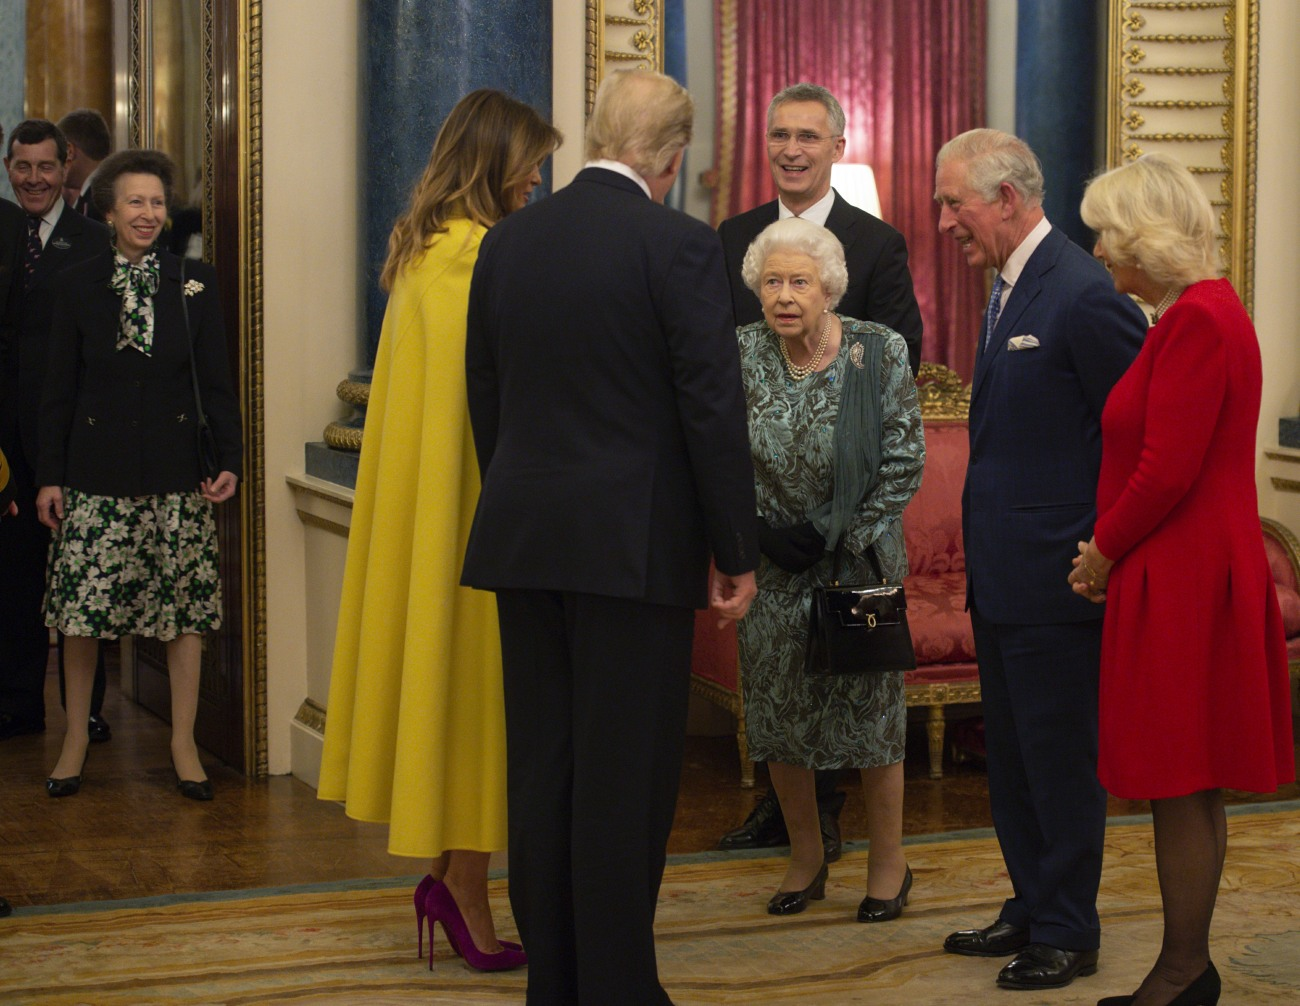 THE QUEEN HOSTING A RECEPTION FOR NATO LEADERS AT BUCKINGHAM PALACE